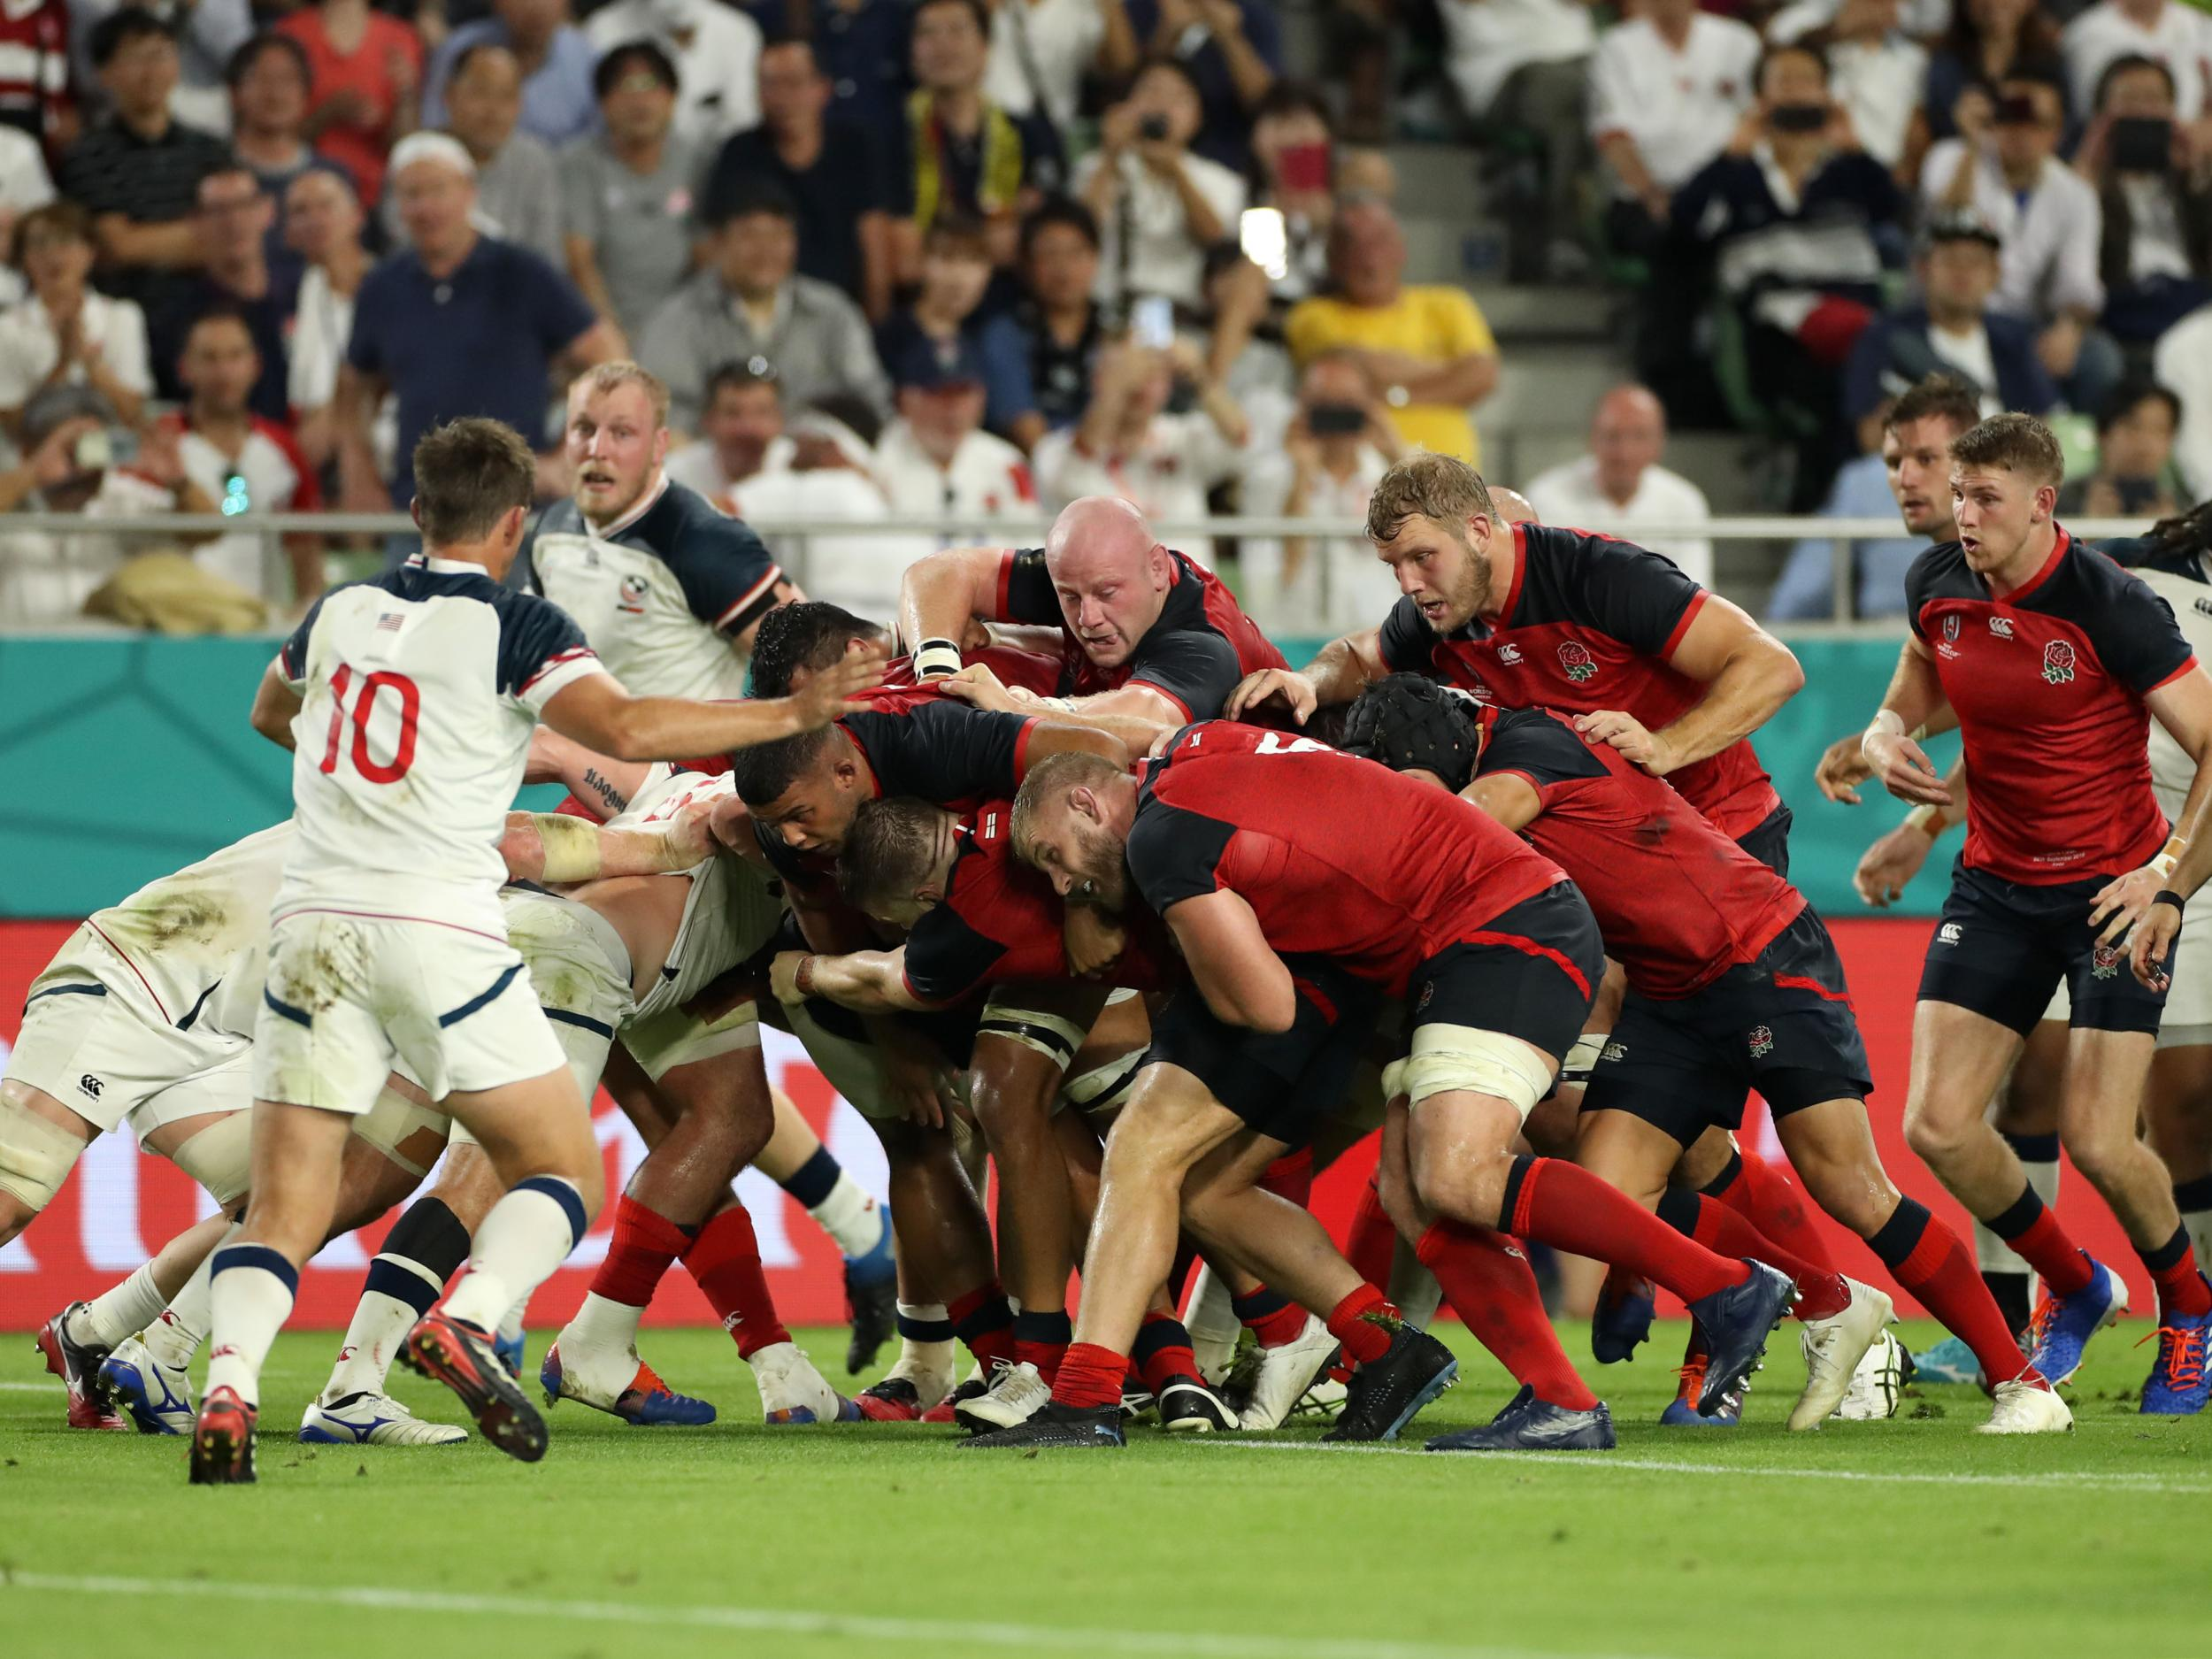 Rugby World Cup 2019: How England mauled the USA on their way to comfortable victory